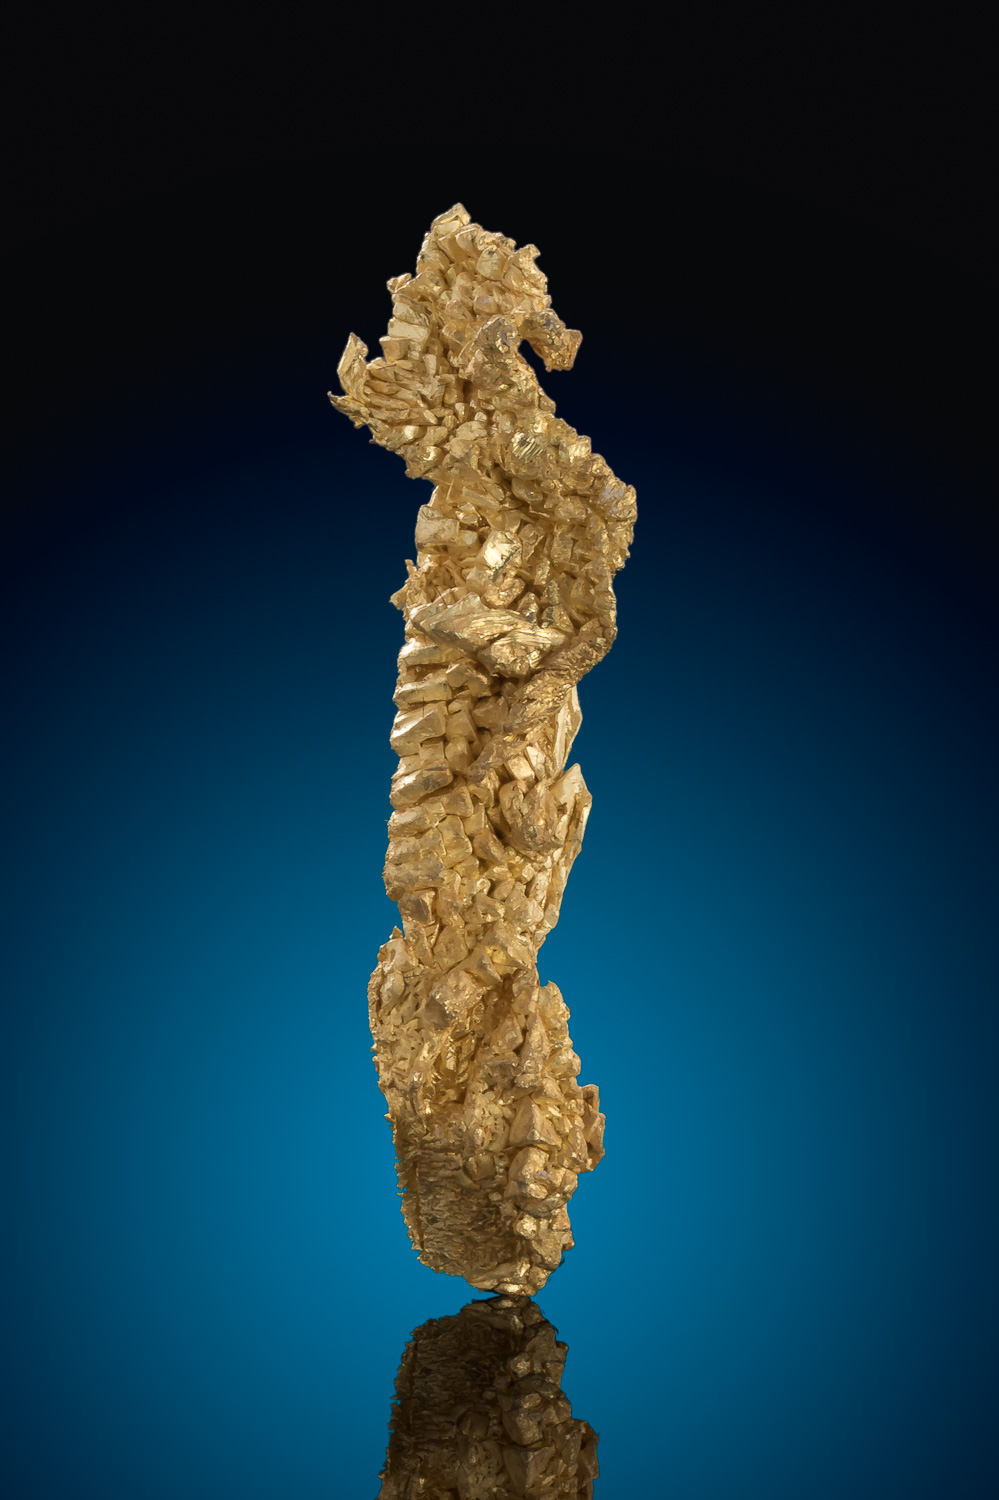 Long and Curved - Well Crystalized Gold Specimen